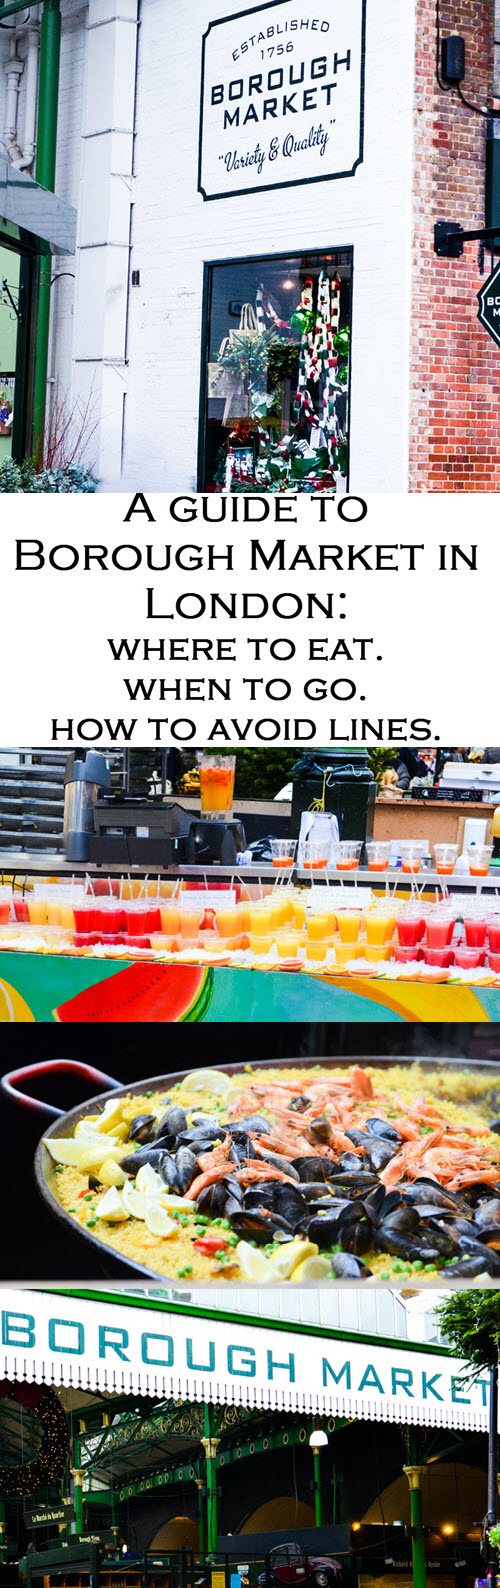 Borough Market Guide in London. What to do in London, UK. Travel Guide to Farmers Market's in London, England. #travel #travelblog #london #lpworldtravels #uk #unitedkingdom #england #travelguide #wanderlust